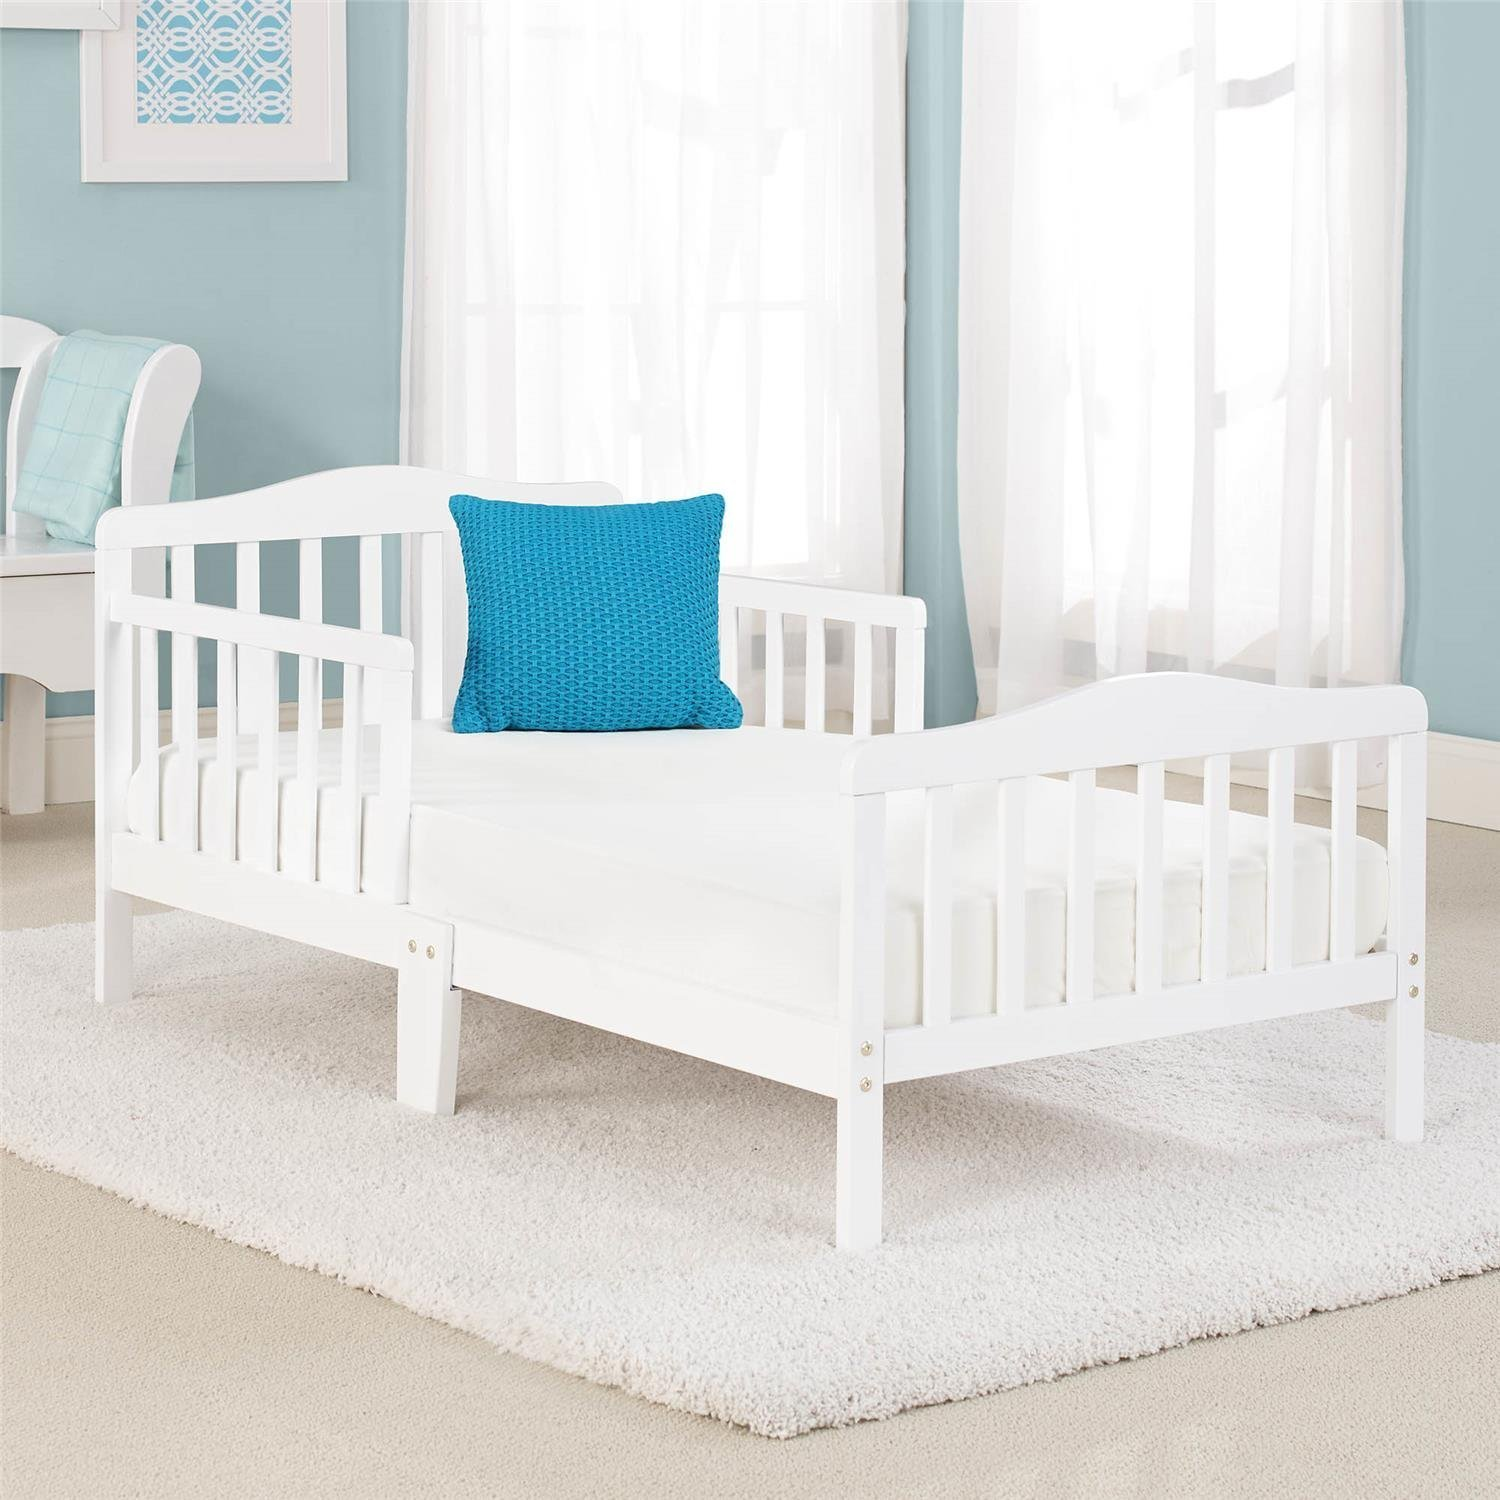 Top 10 Best Toddler Beds (2020 Reviews & Buying Guide) 8